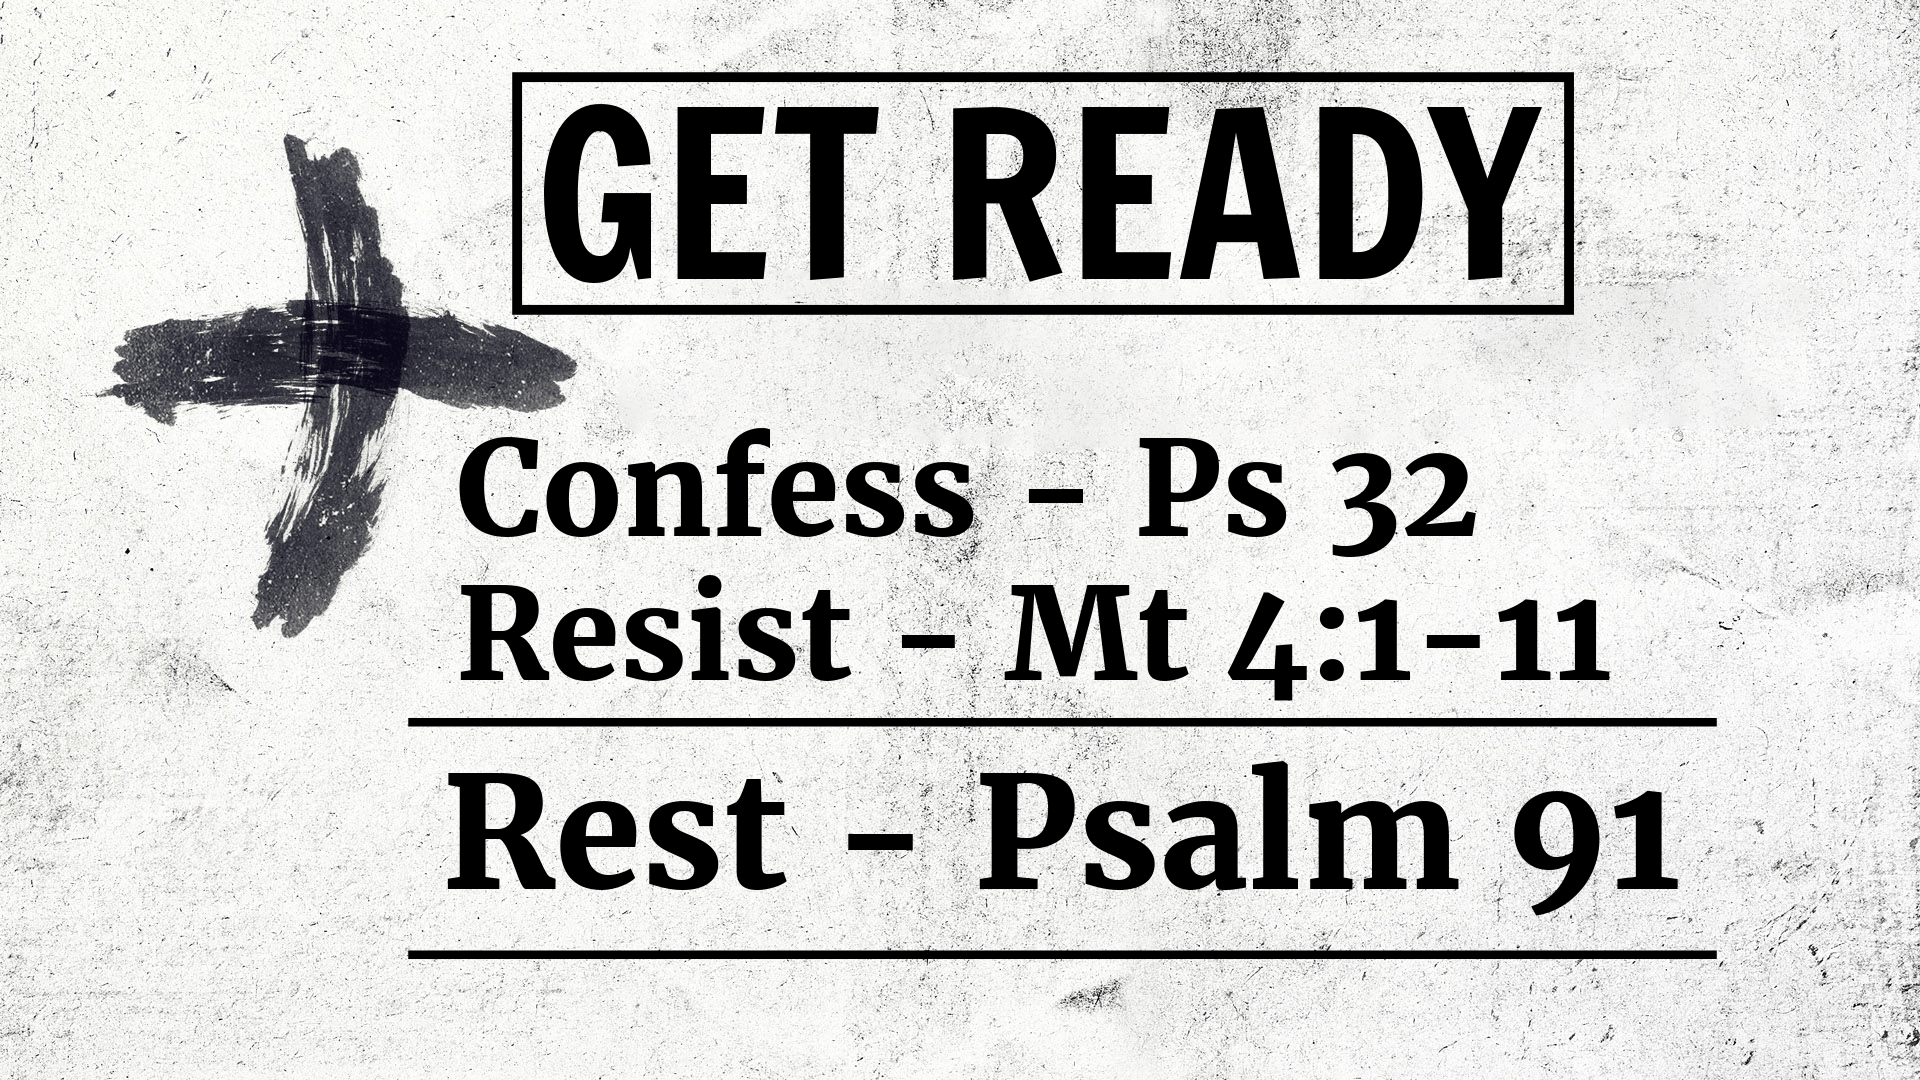 Get Ready - Rest